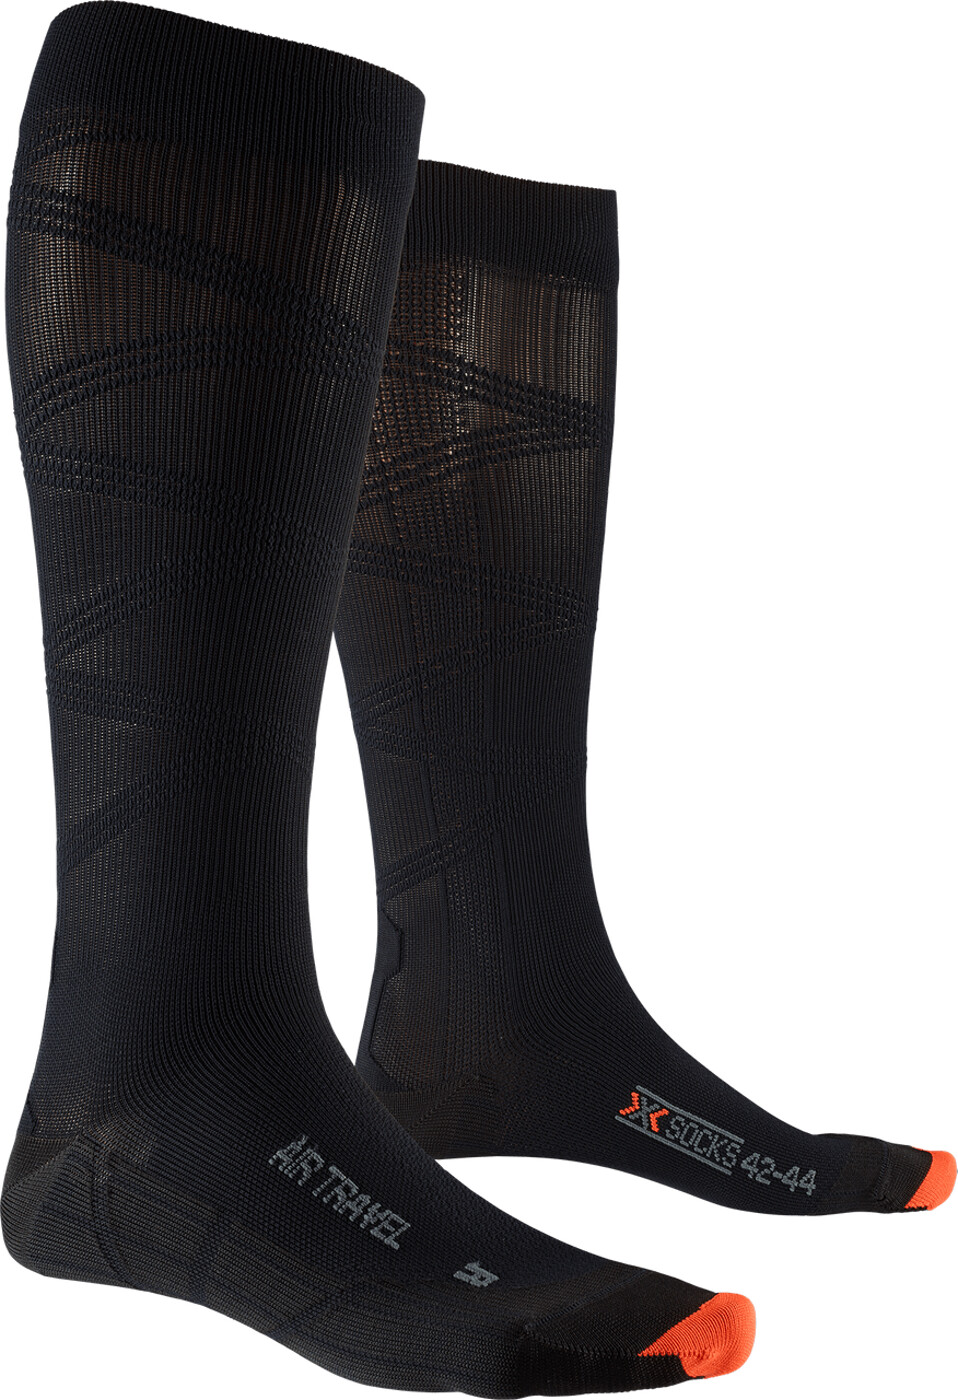 X-BIONIC AIR TRAVEL HELIX 4.0 Socken - Herren